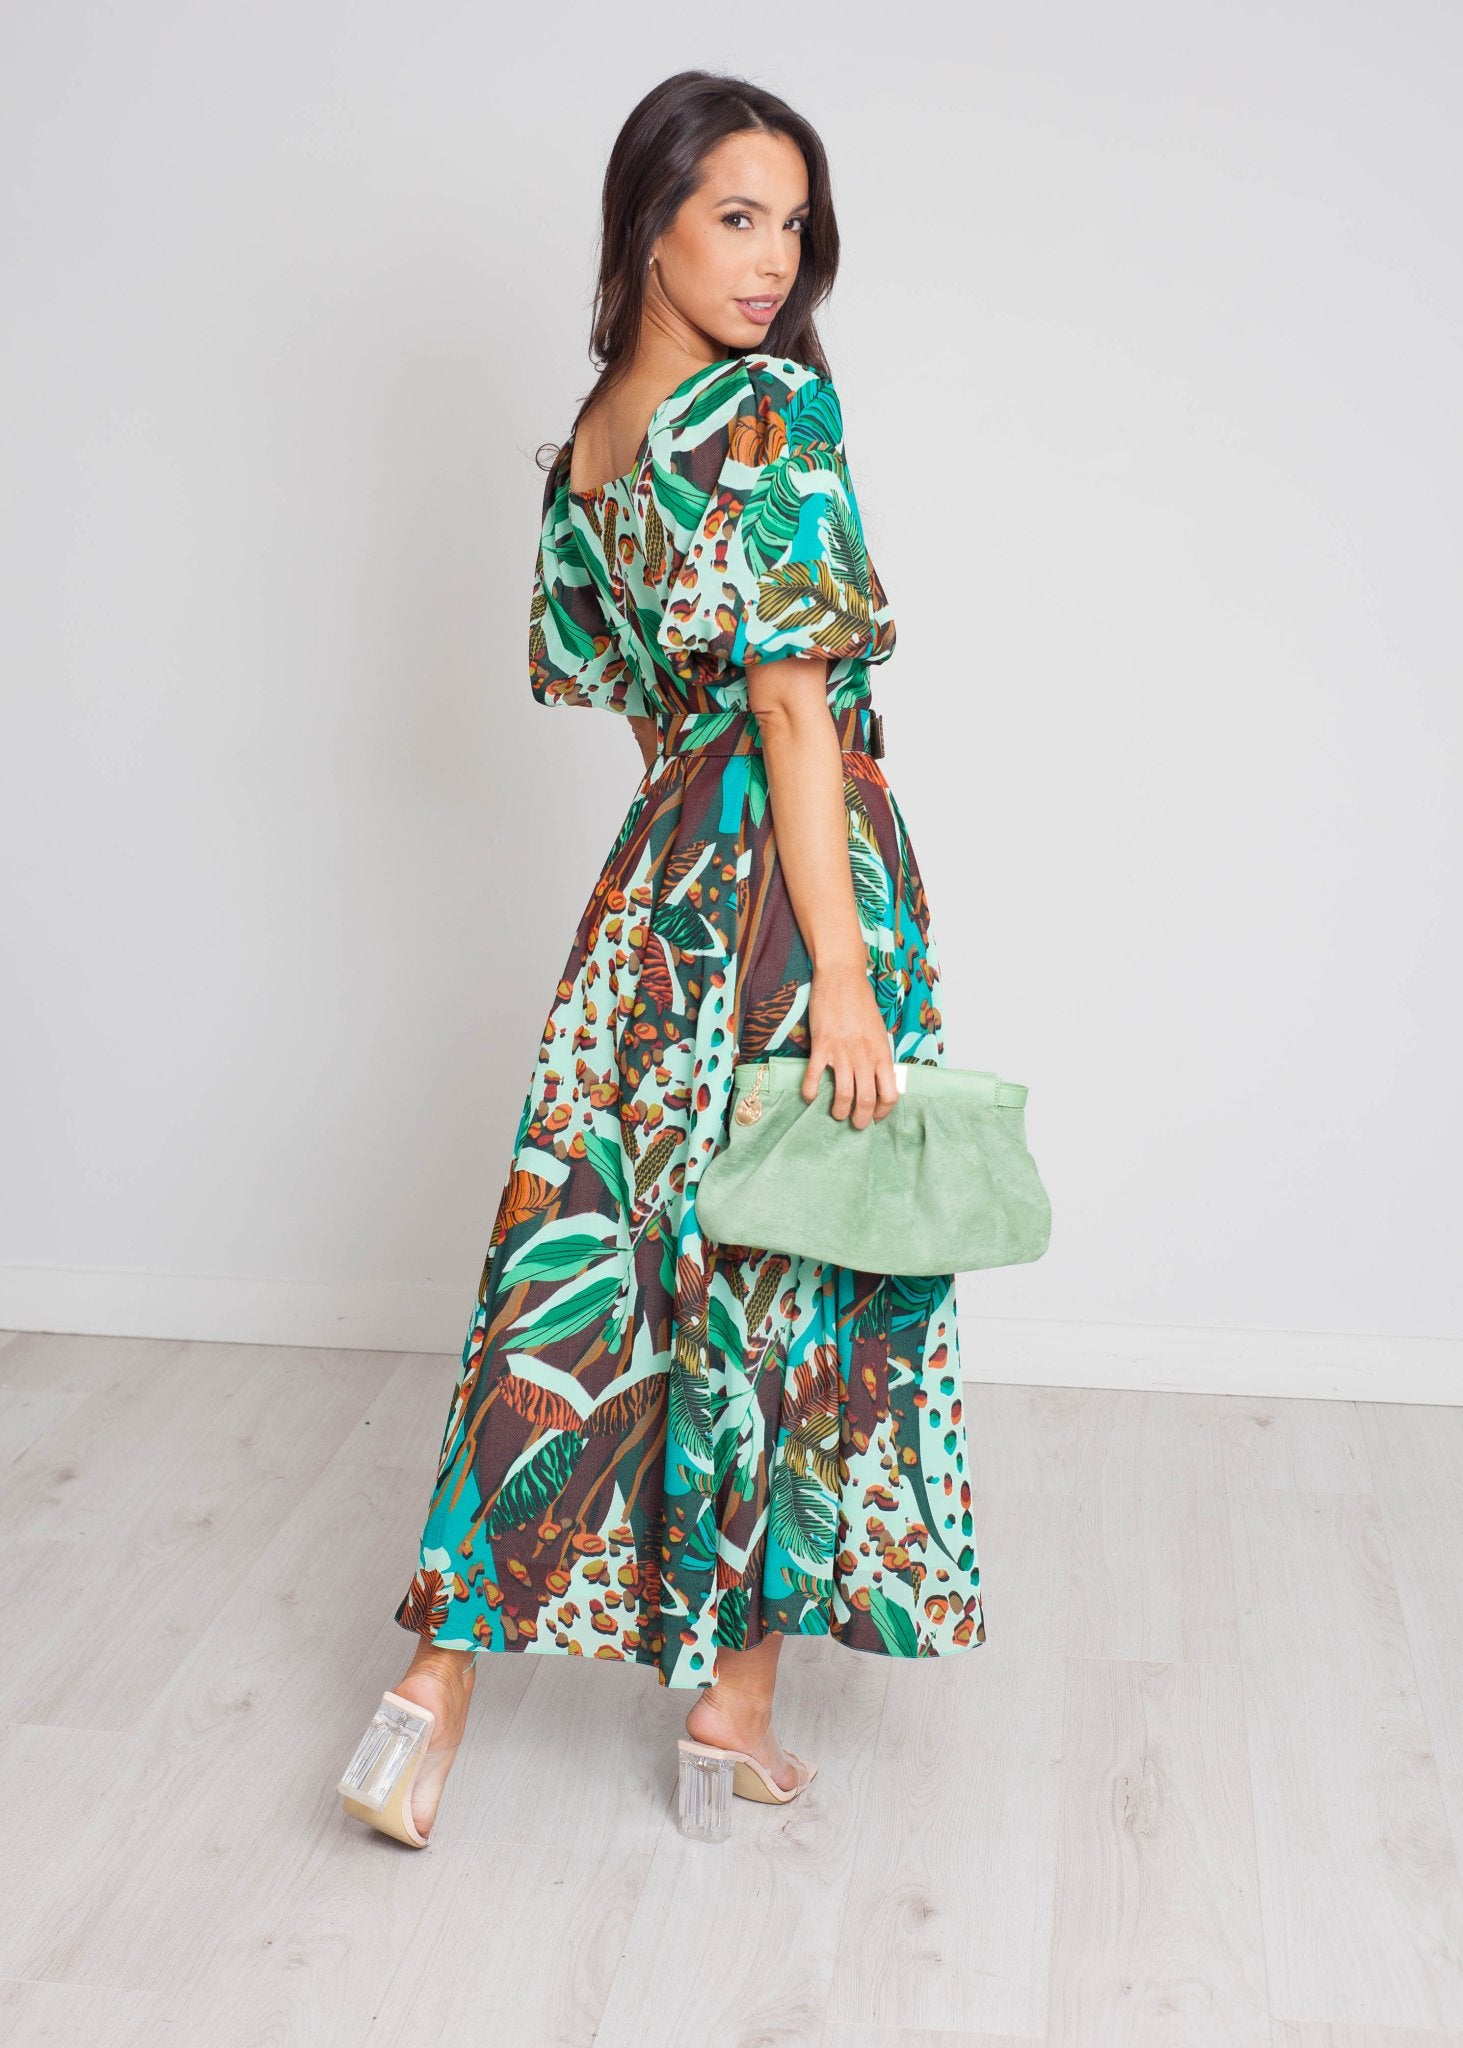 Eva Midi Dress In Green Mix - The Walk in Wardrobe